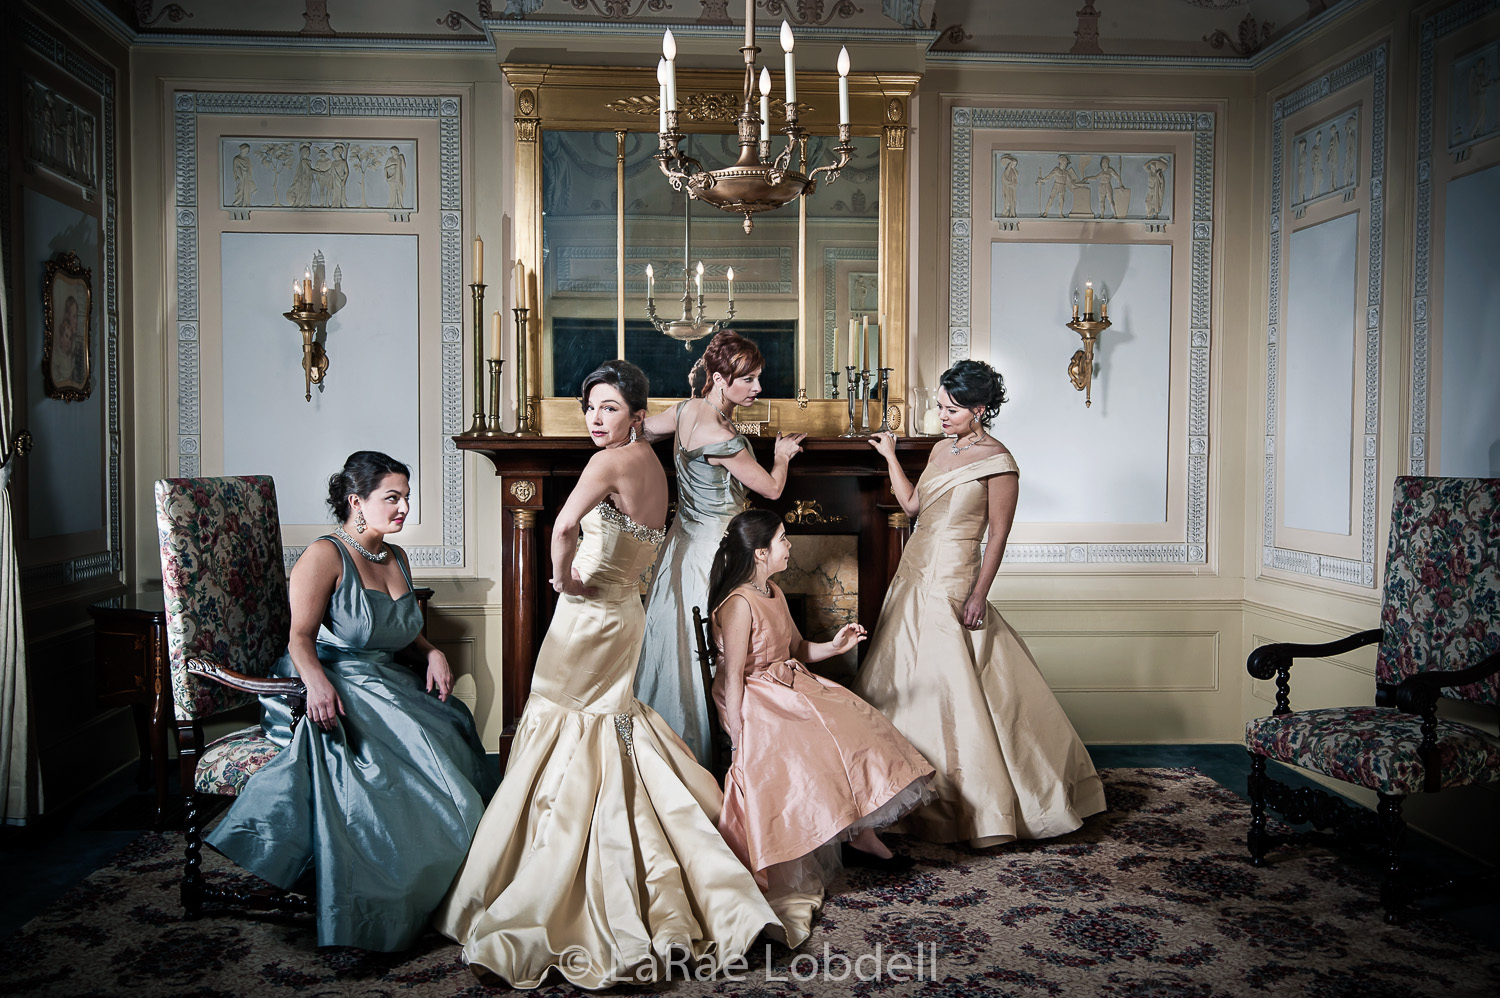 Designer Julie Danforth in her bridal gown with bridesmaids. © LaRae Lobdell 2013.